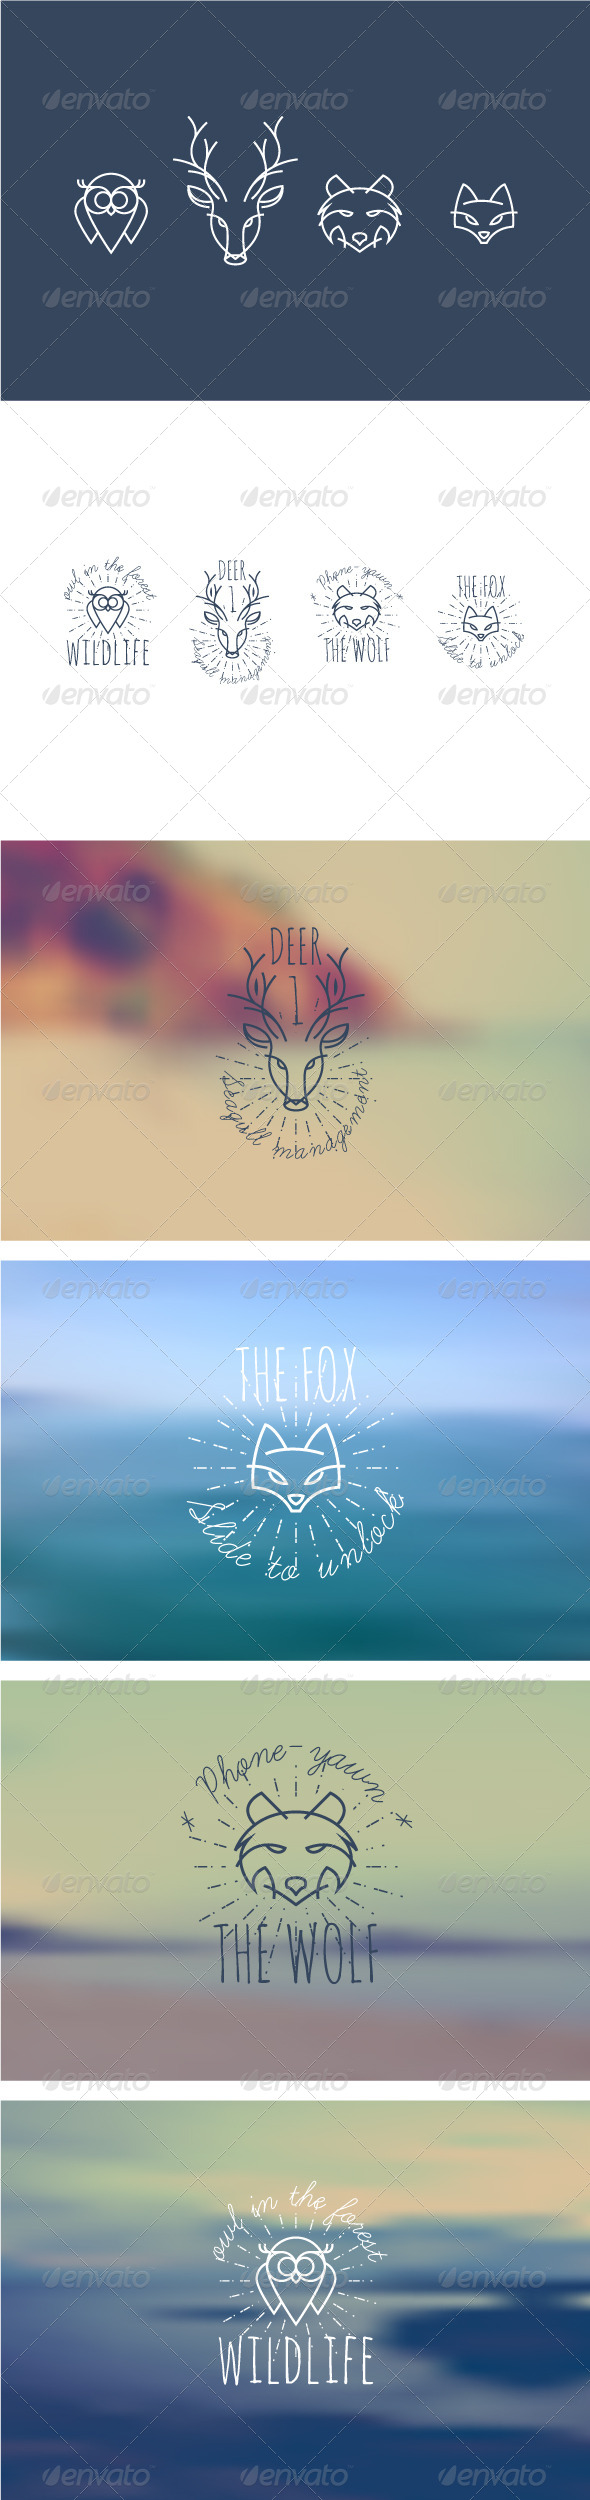 GraphicRiver Animal Insignias 8734269